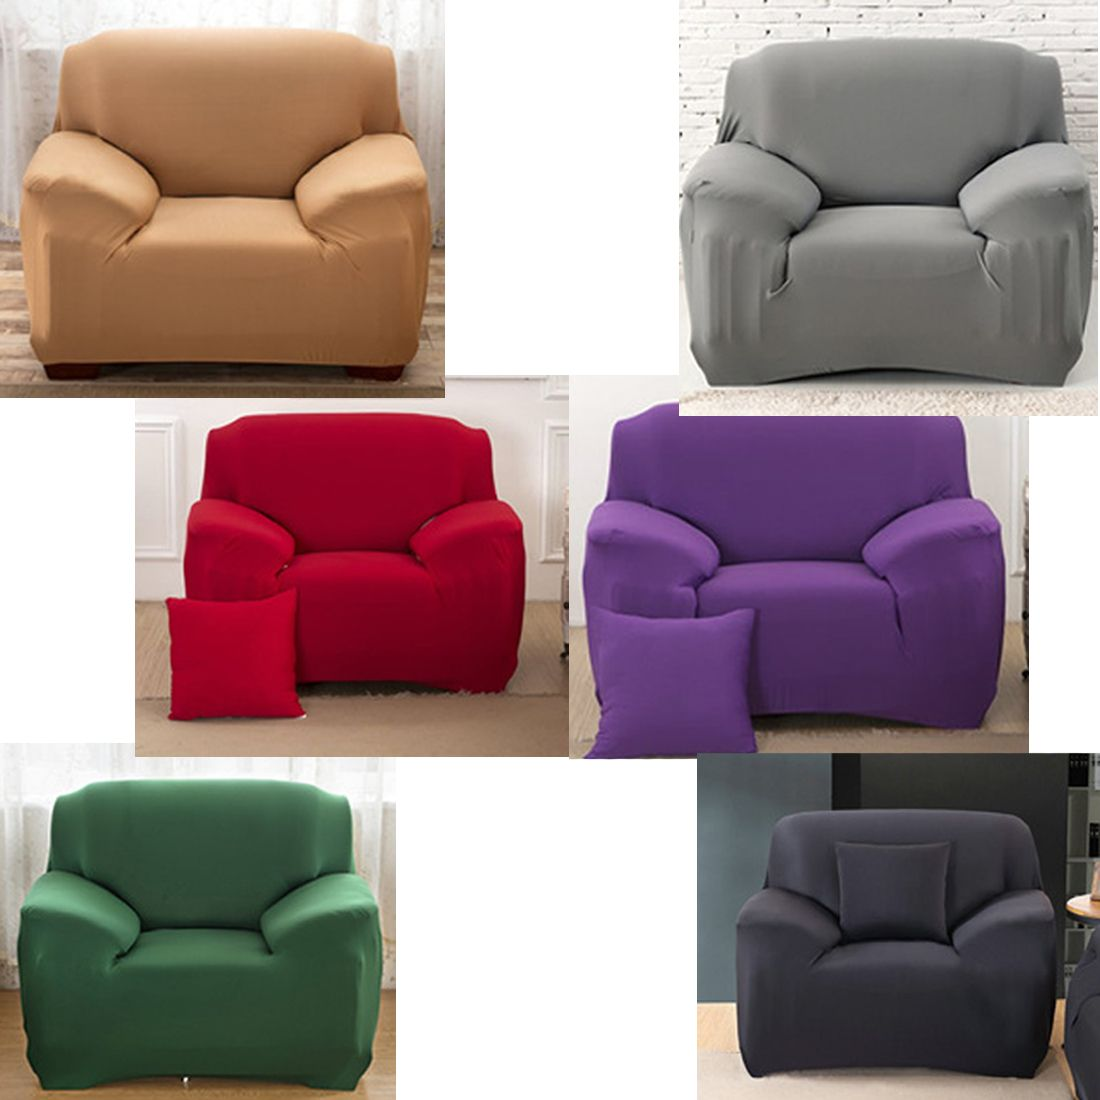 Elastic Single Cover Solid Color Cover For Sofa Stretch Home Decoration Sofa Cover For Living Drawing Room Single Sofa Sofa Covers Sofa